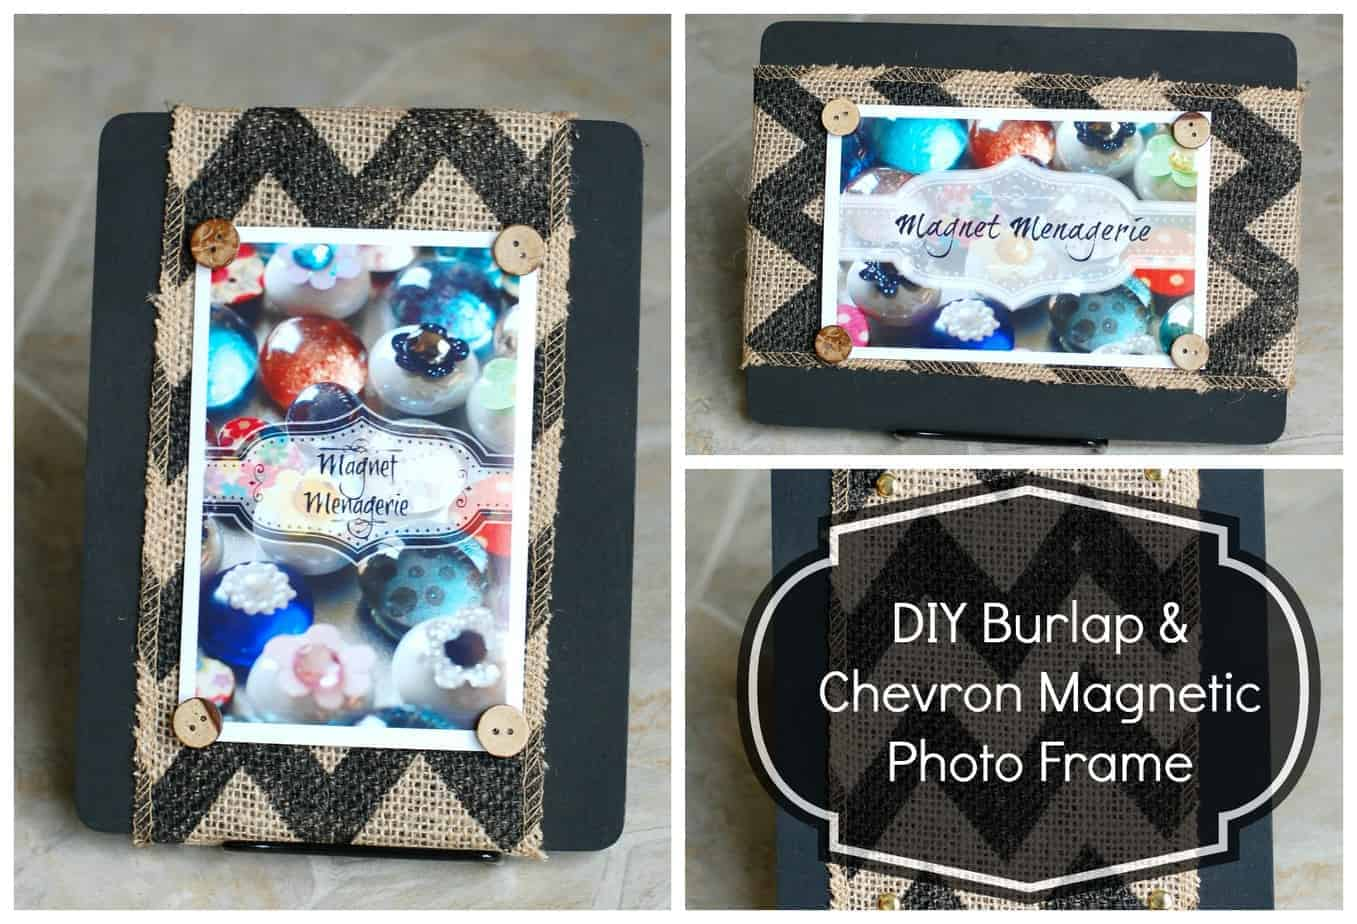 Double Sided Photo Frame:  Burlap & Chevron Magnetic Photo Frame!